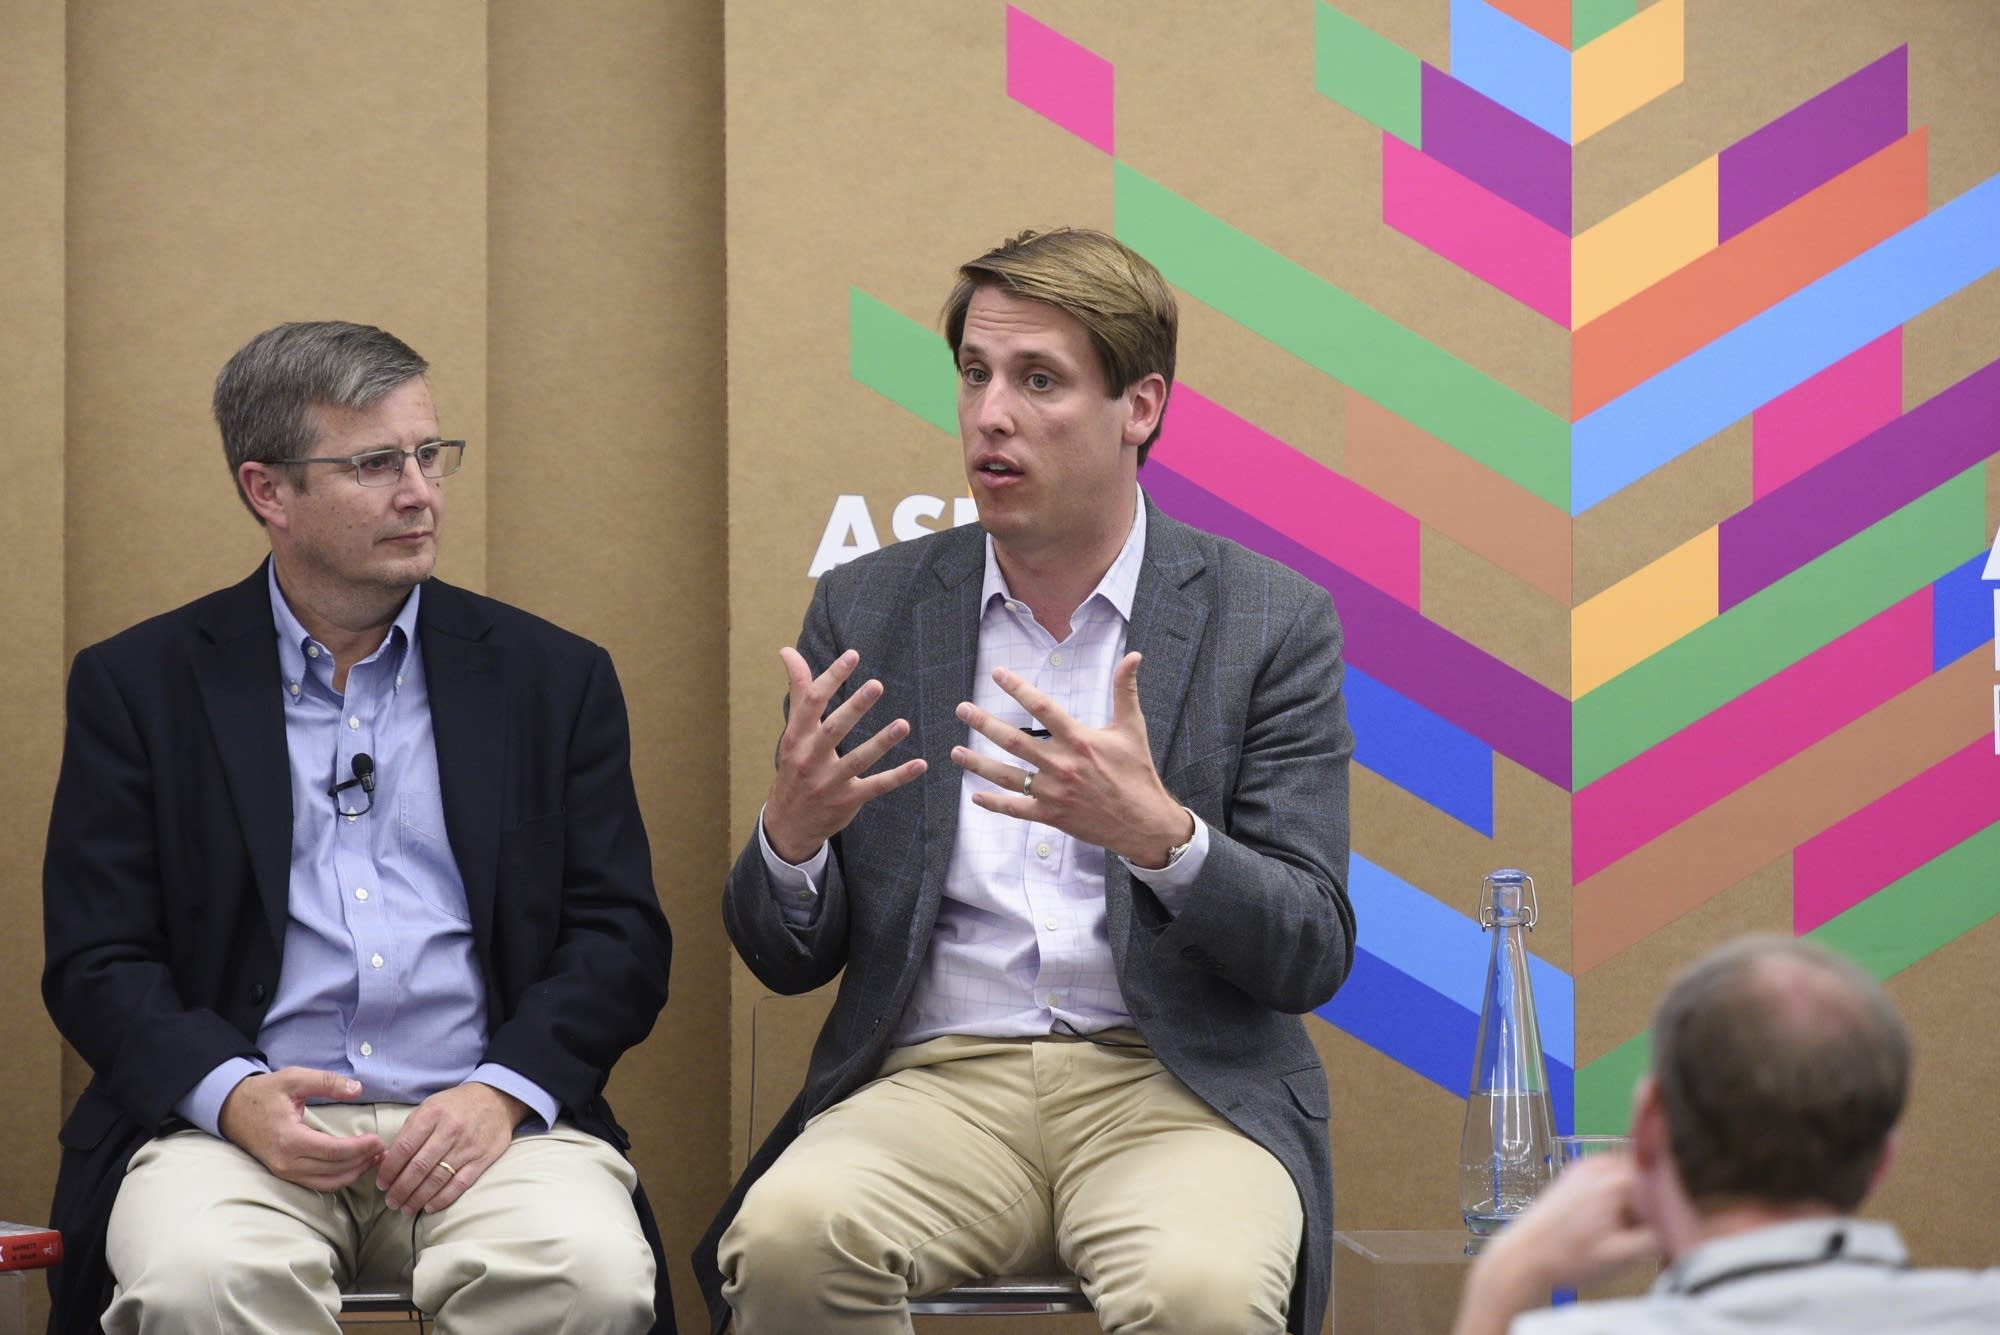 Peter Feaver and Garrett Graff at the Aspen Ideas Festival.